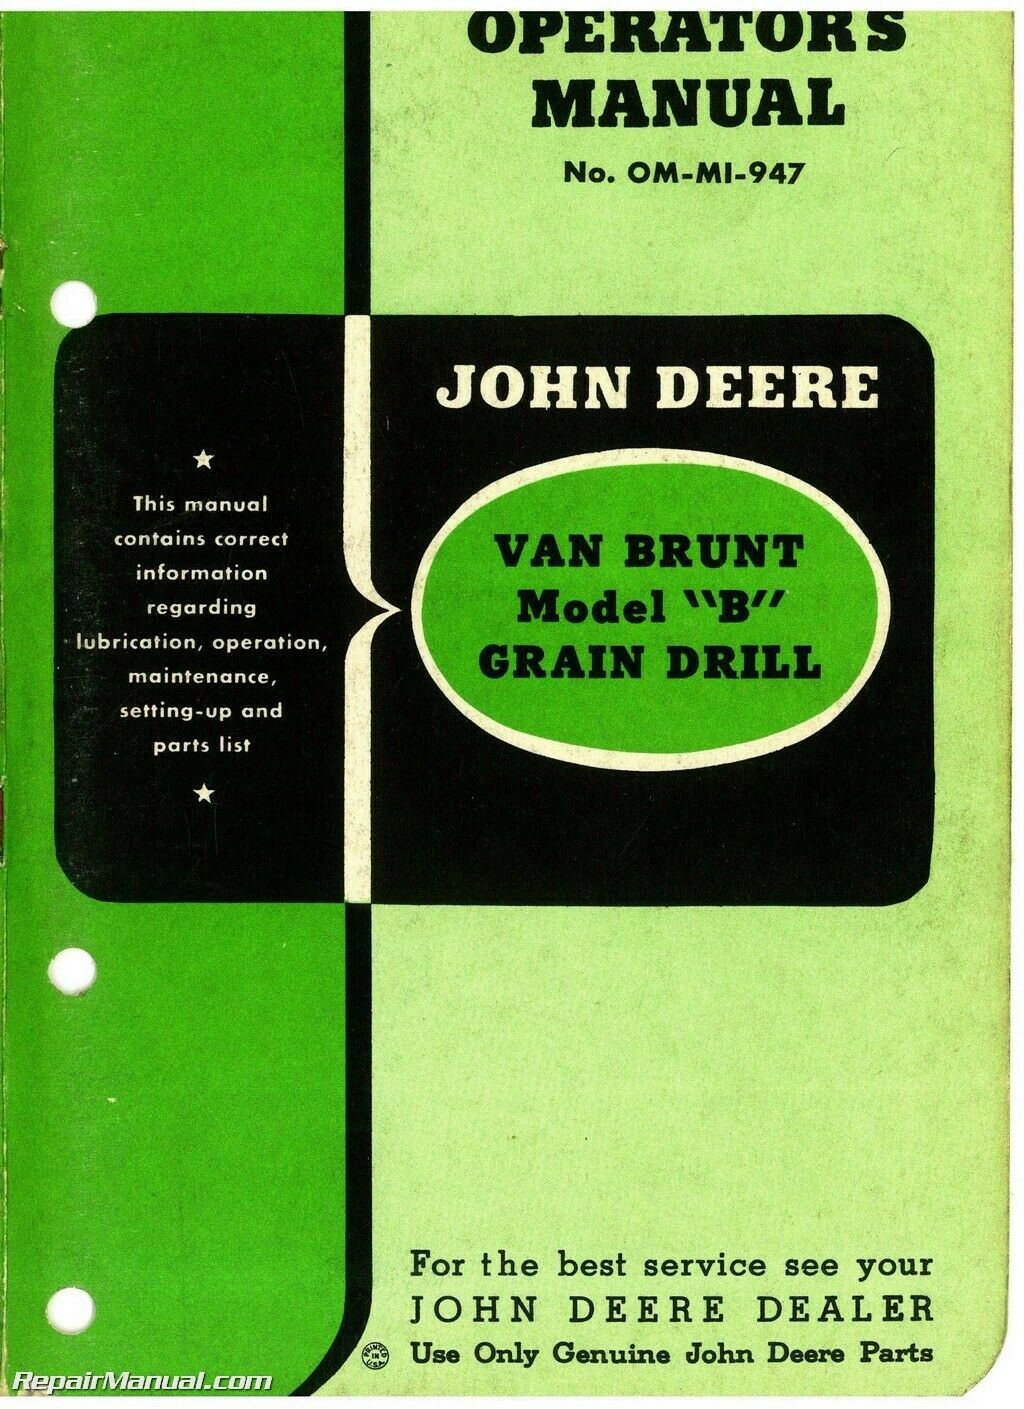 John Deere Van Brunt Model B Grain Drill Operators Manual Parts. John Deere Van Brunt Model B Grain Drill Operators Manual Parts 1 Of 1only 4 Available. John Deere. 1949 John Deere B Transmission Diagram At Scoala.co